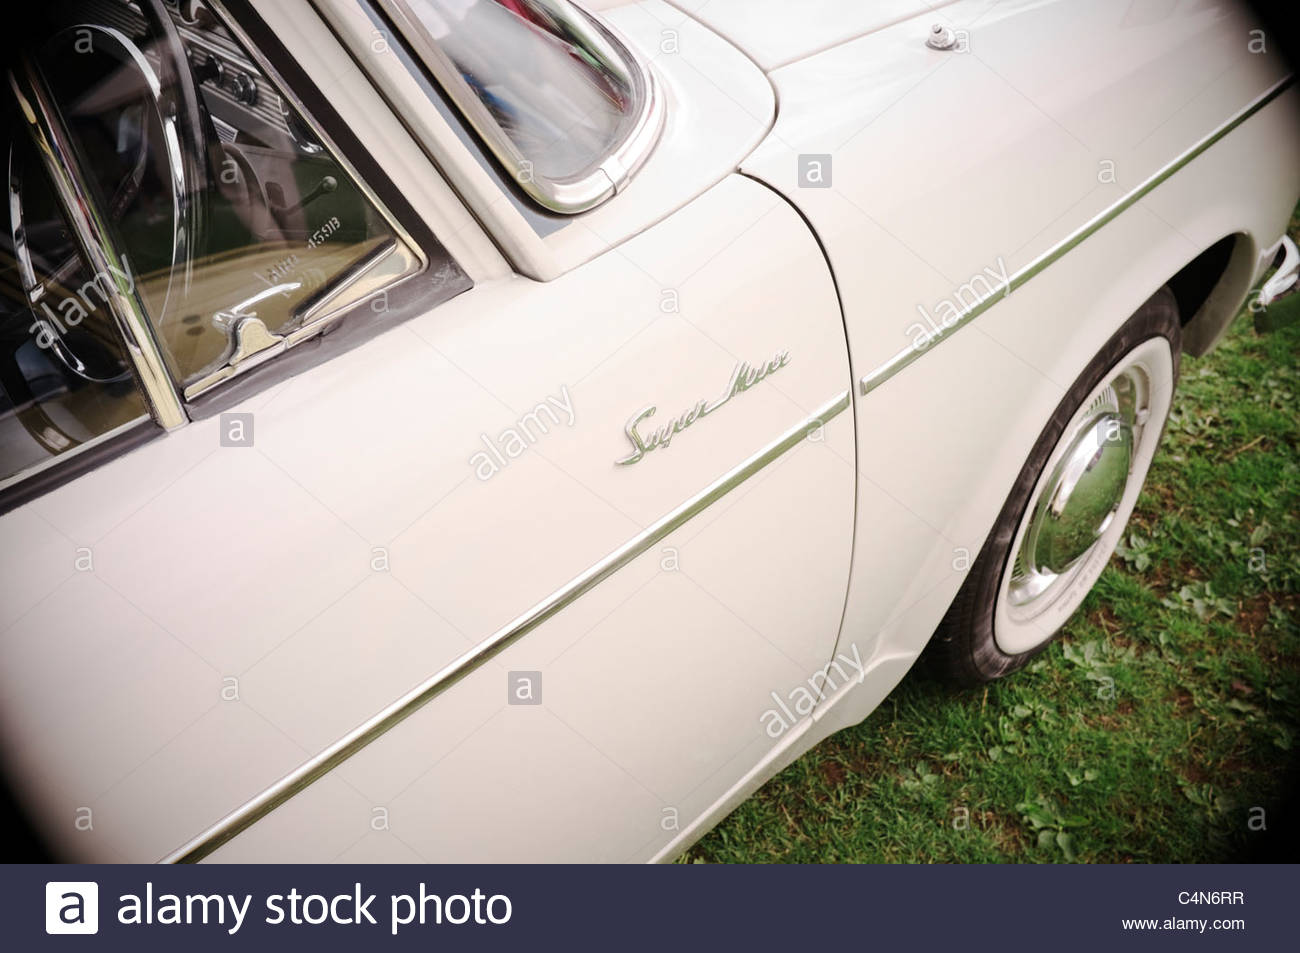 Hillman Super Minx Auto, UK. Stockbild